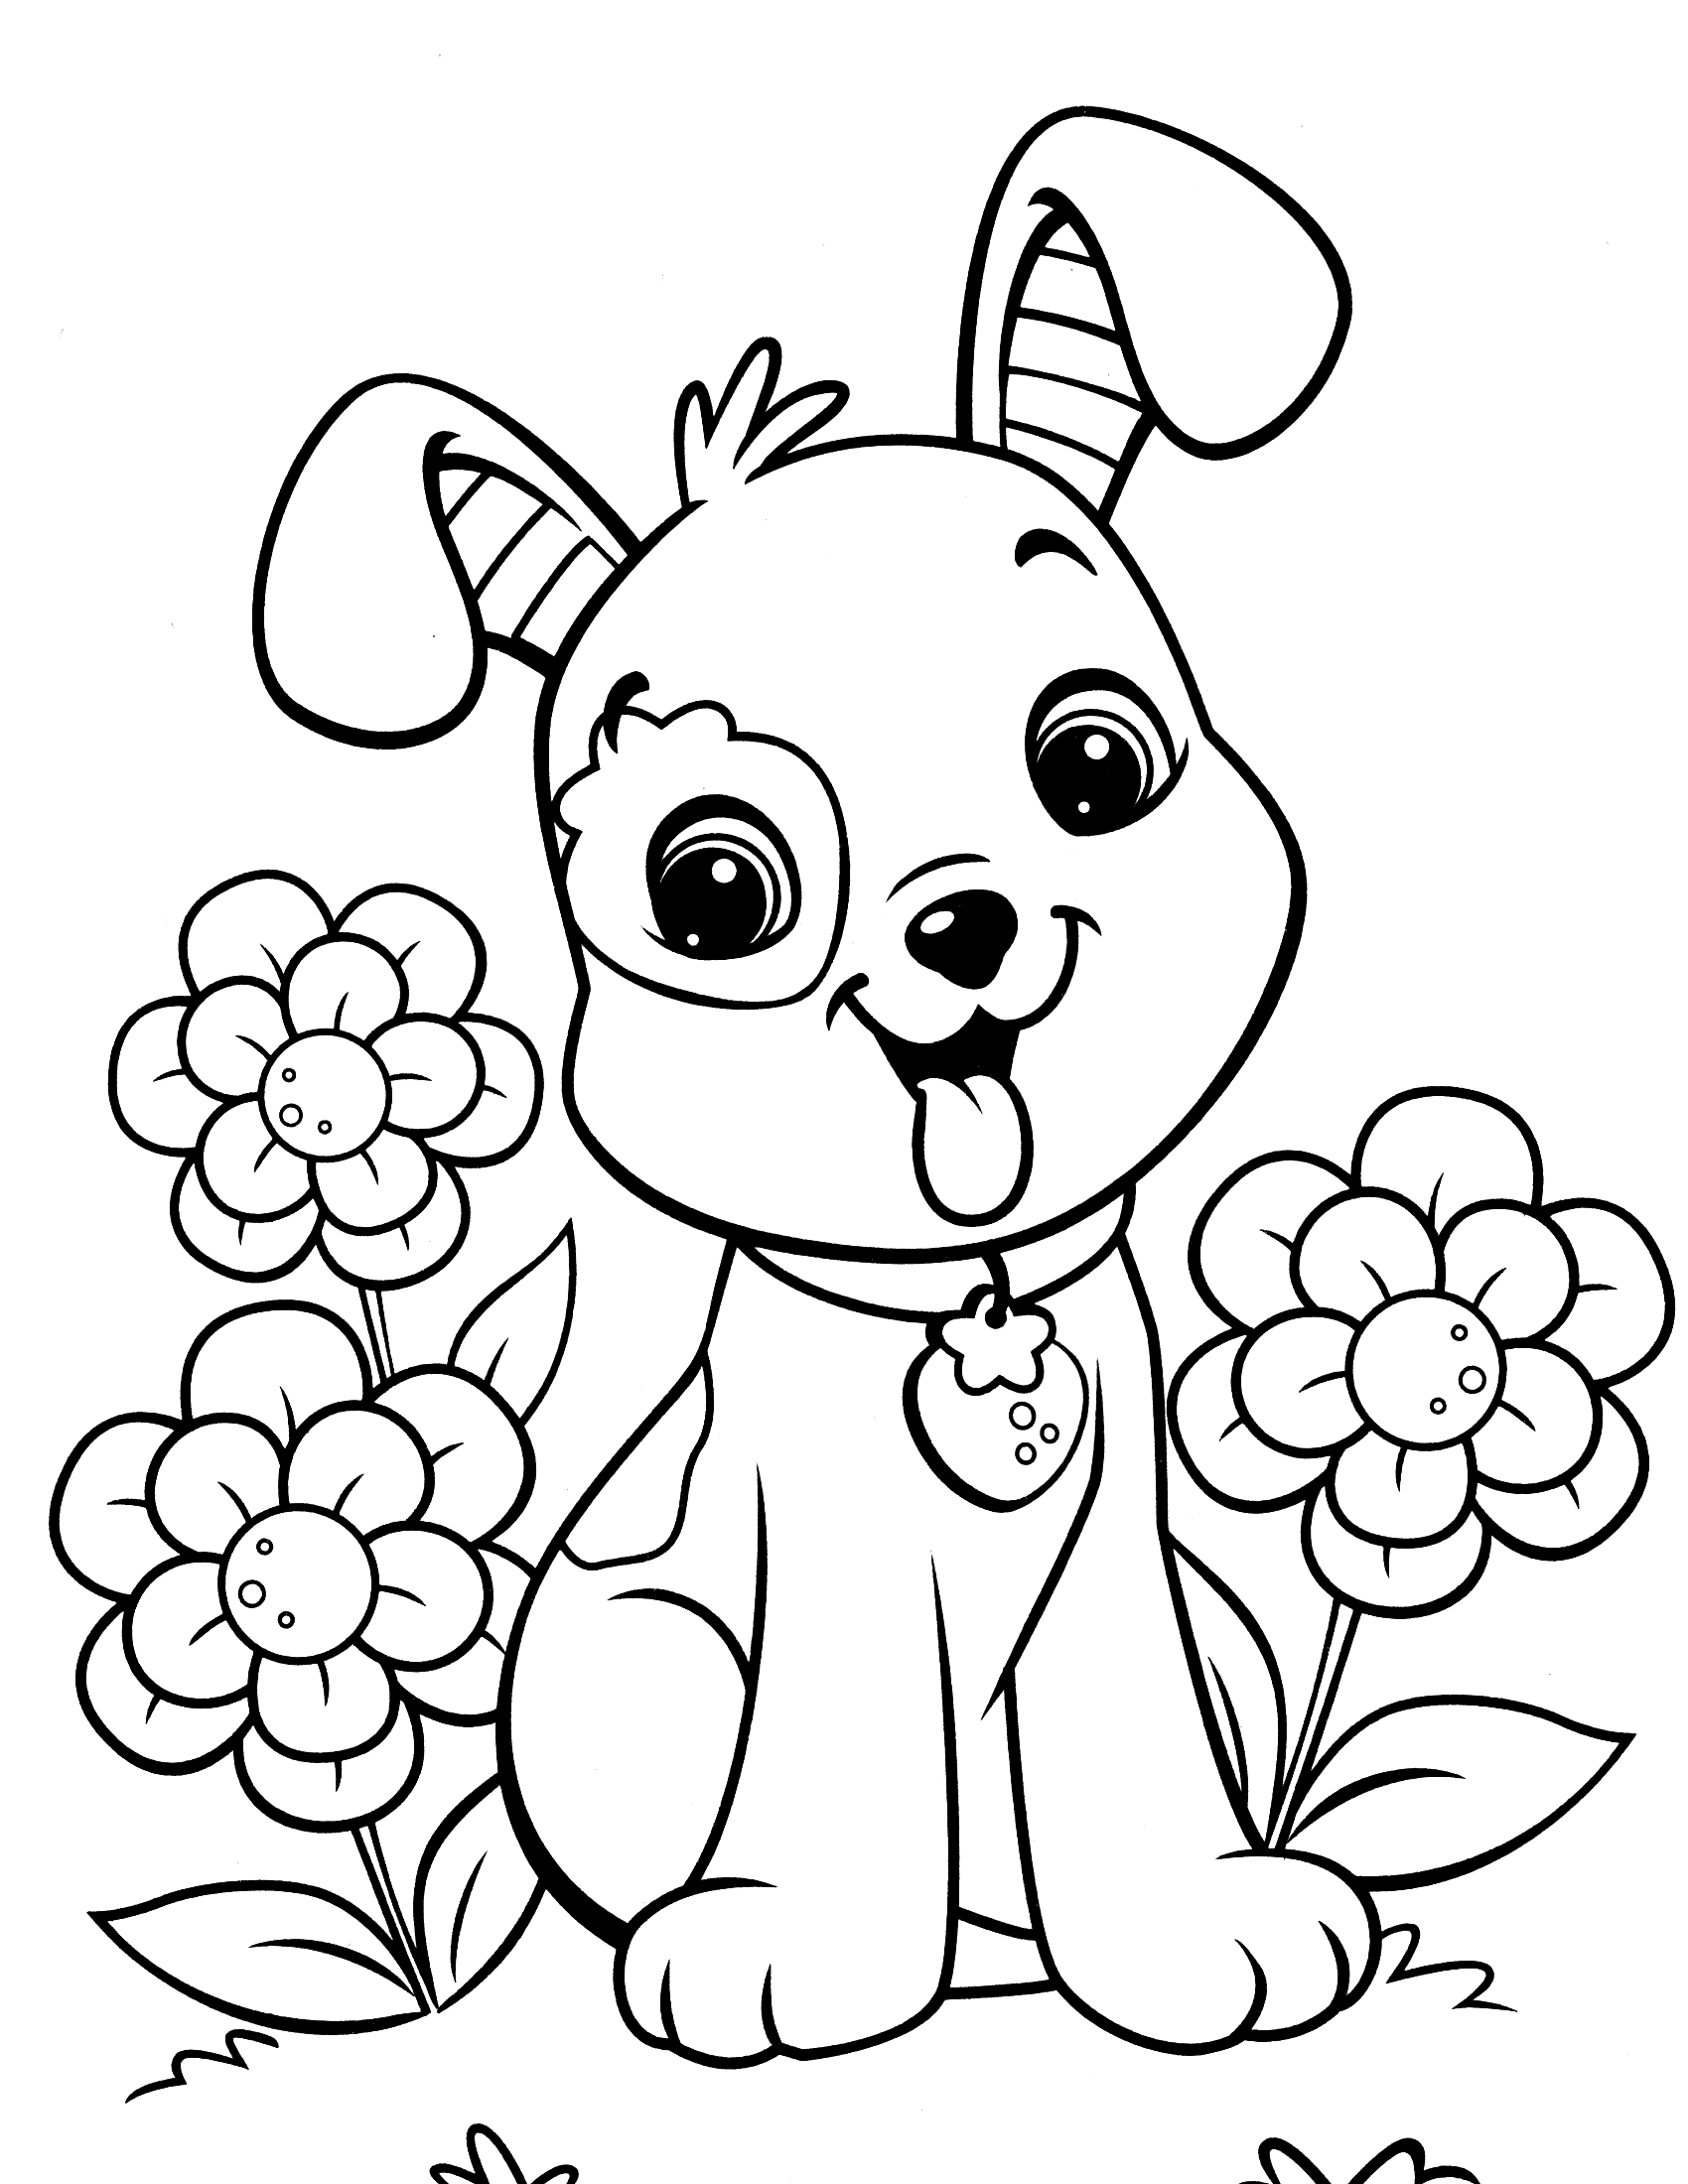 dog coloring pages to print out free printable dog coloring pages for kids to out dog pages print coloring